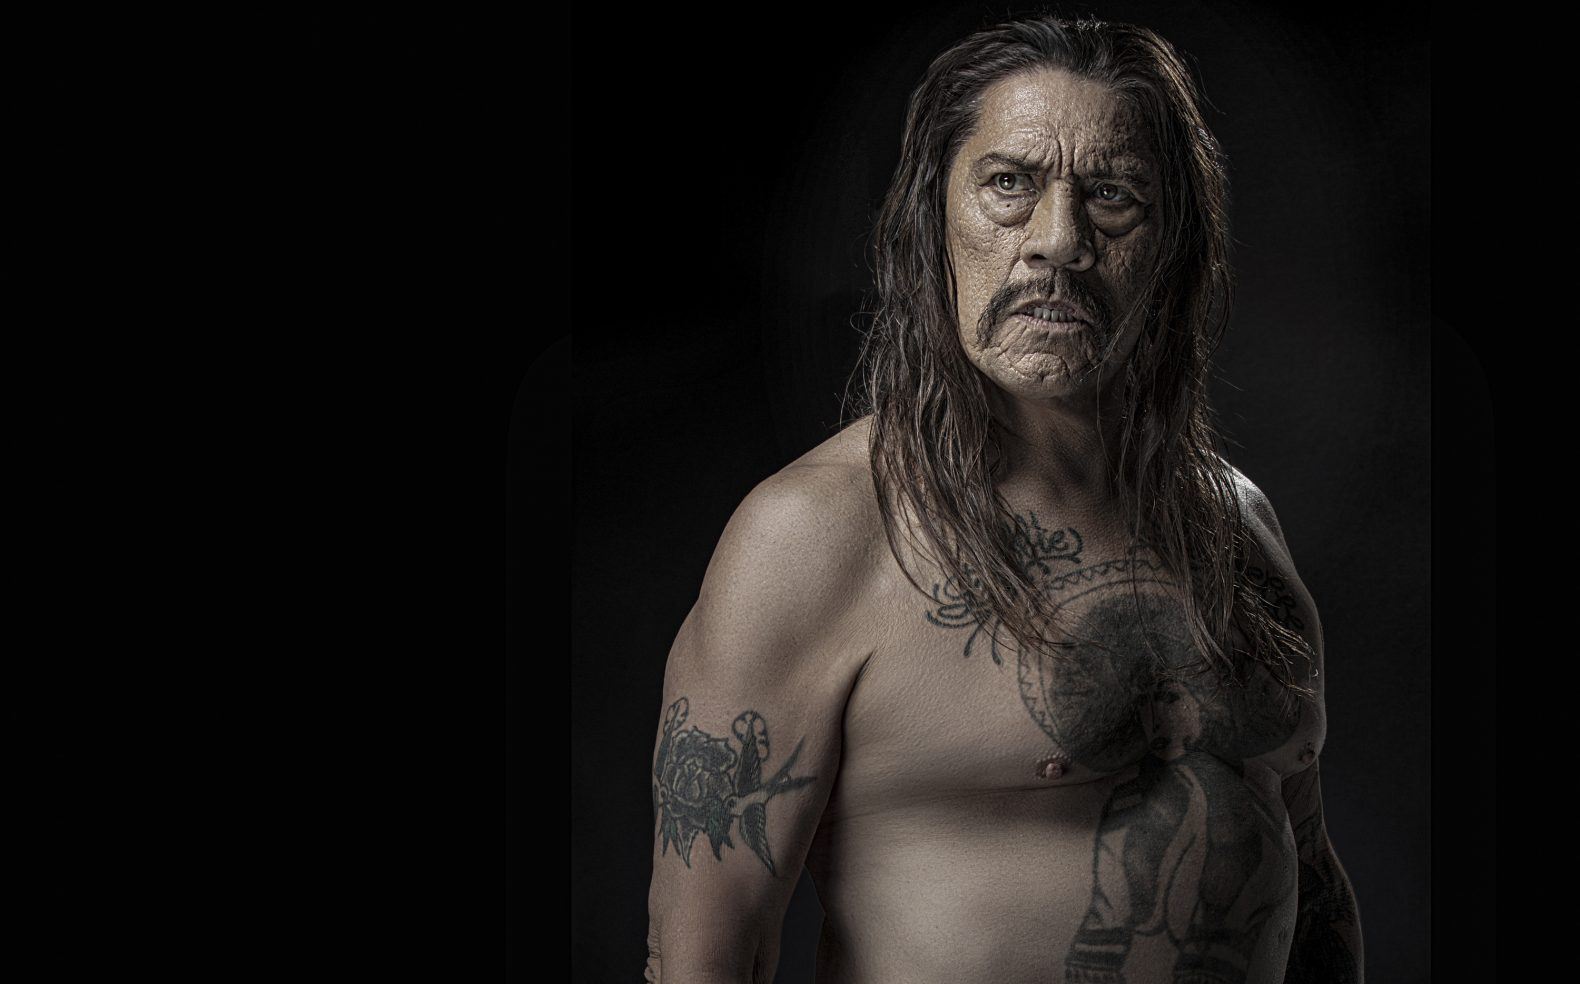 Professional production portrait of a strong middle-aged man with tatoos and no shirt and shoulder length dark straight hair.